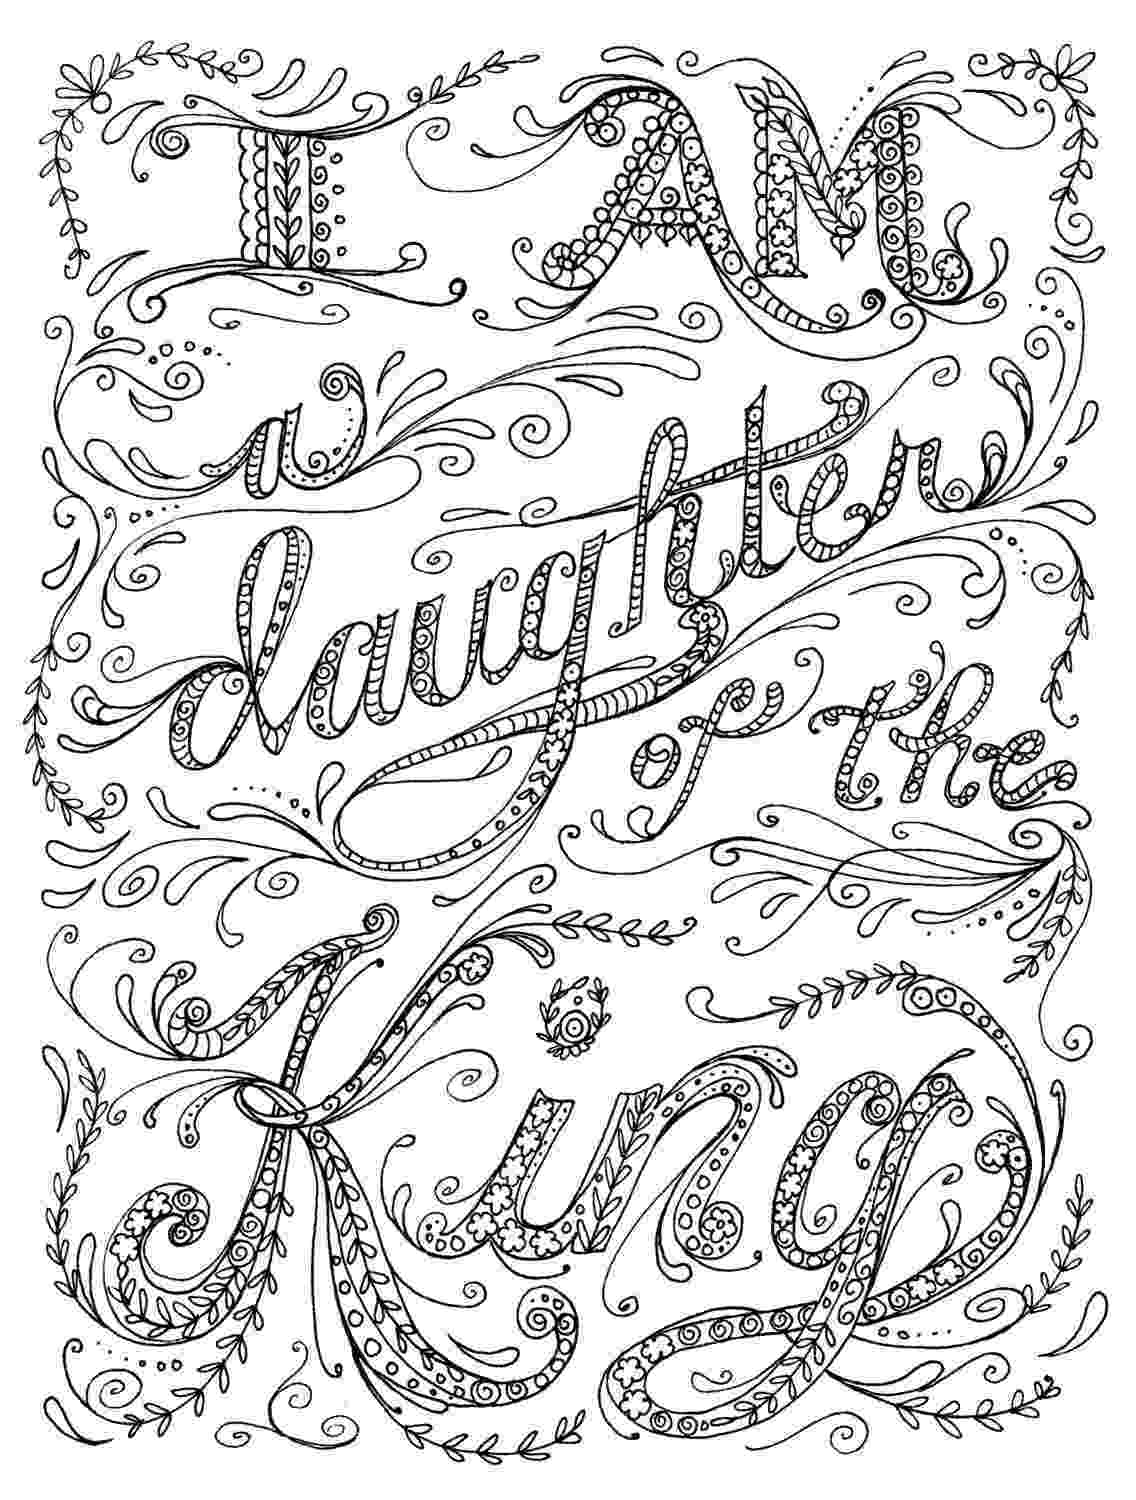 christian bible coloring pages quotb is for biblequot coloring page christian bible pages coloring